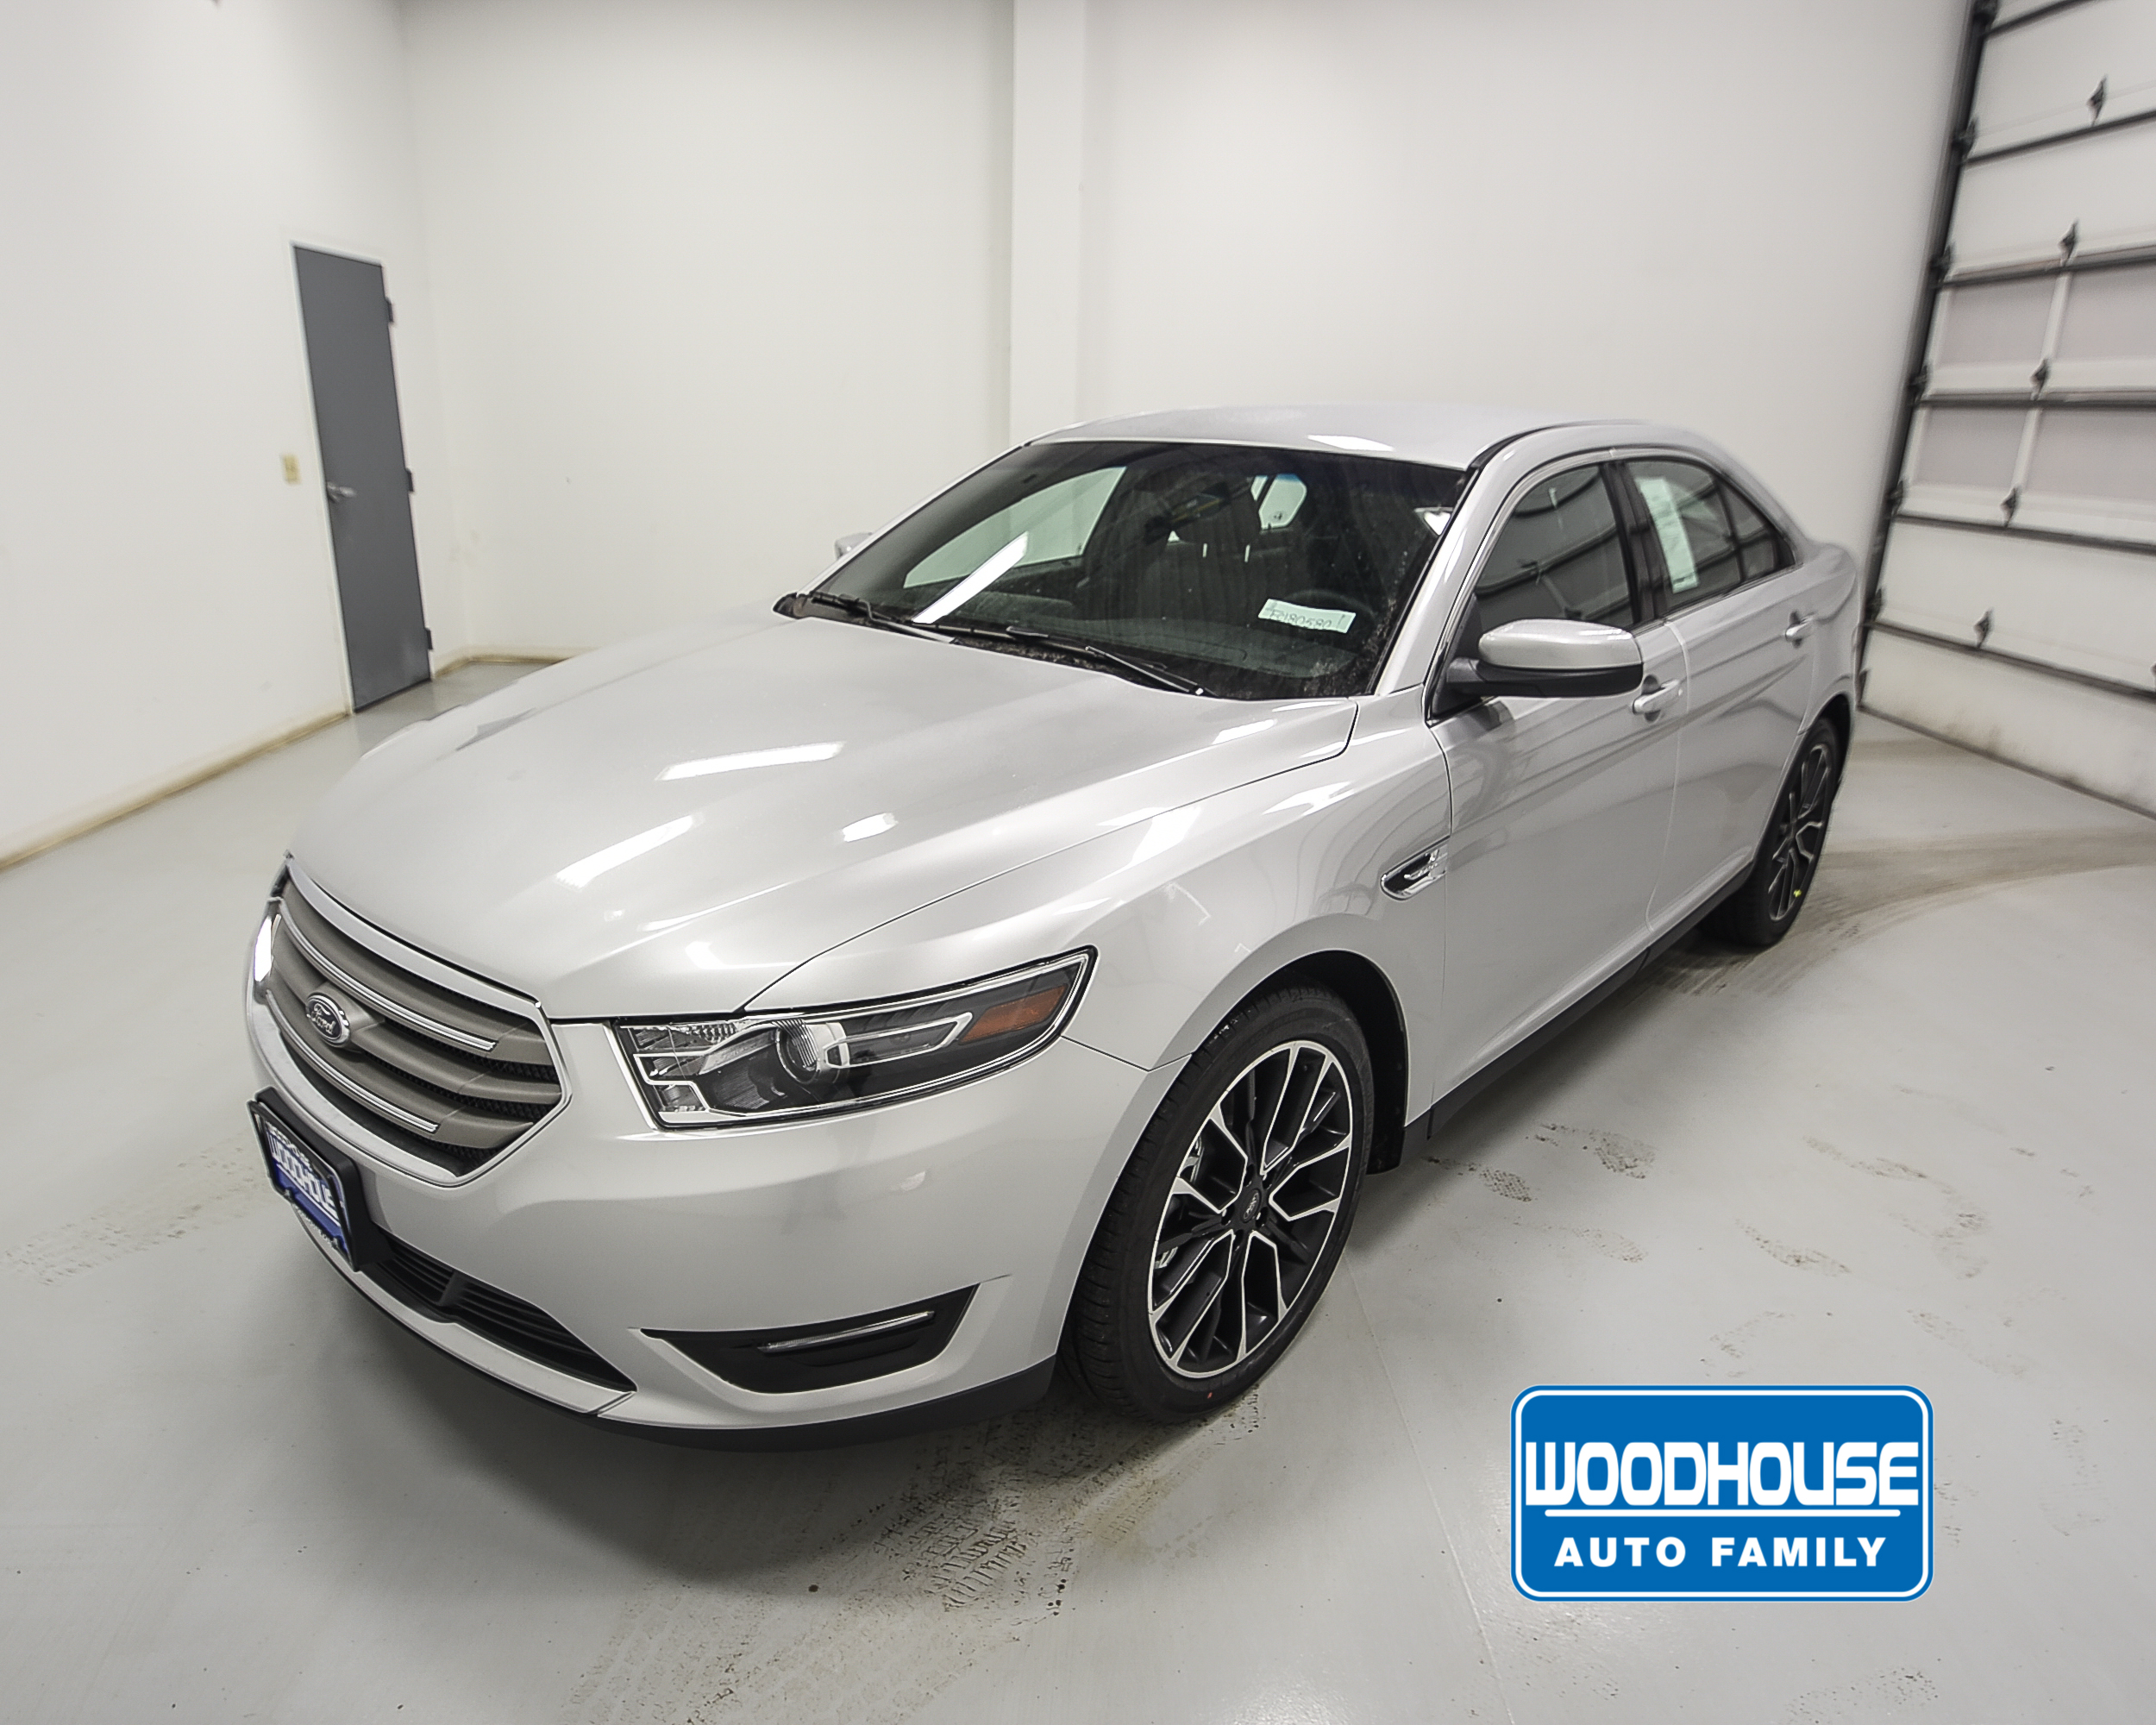 Ford Taurus For Sale Woodhouse Auto